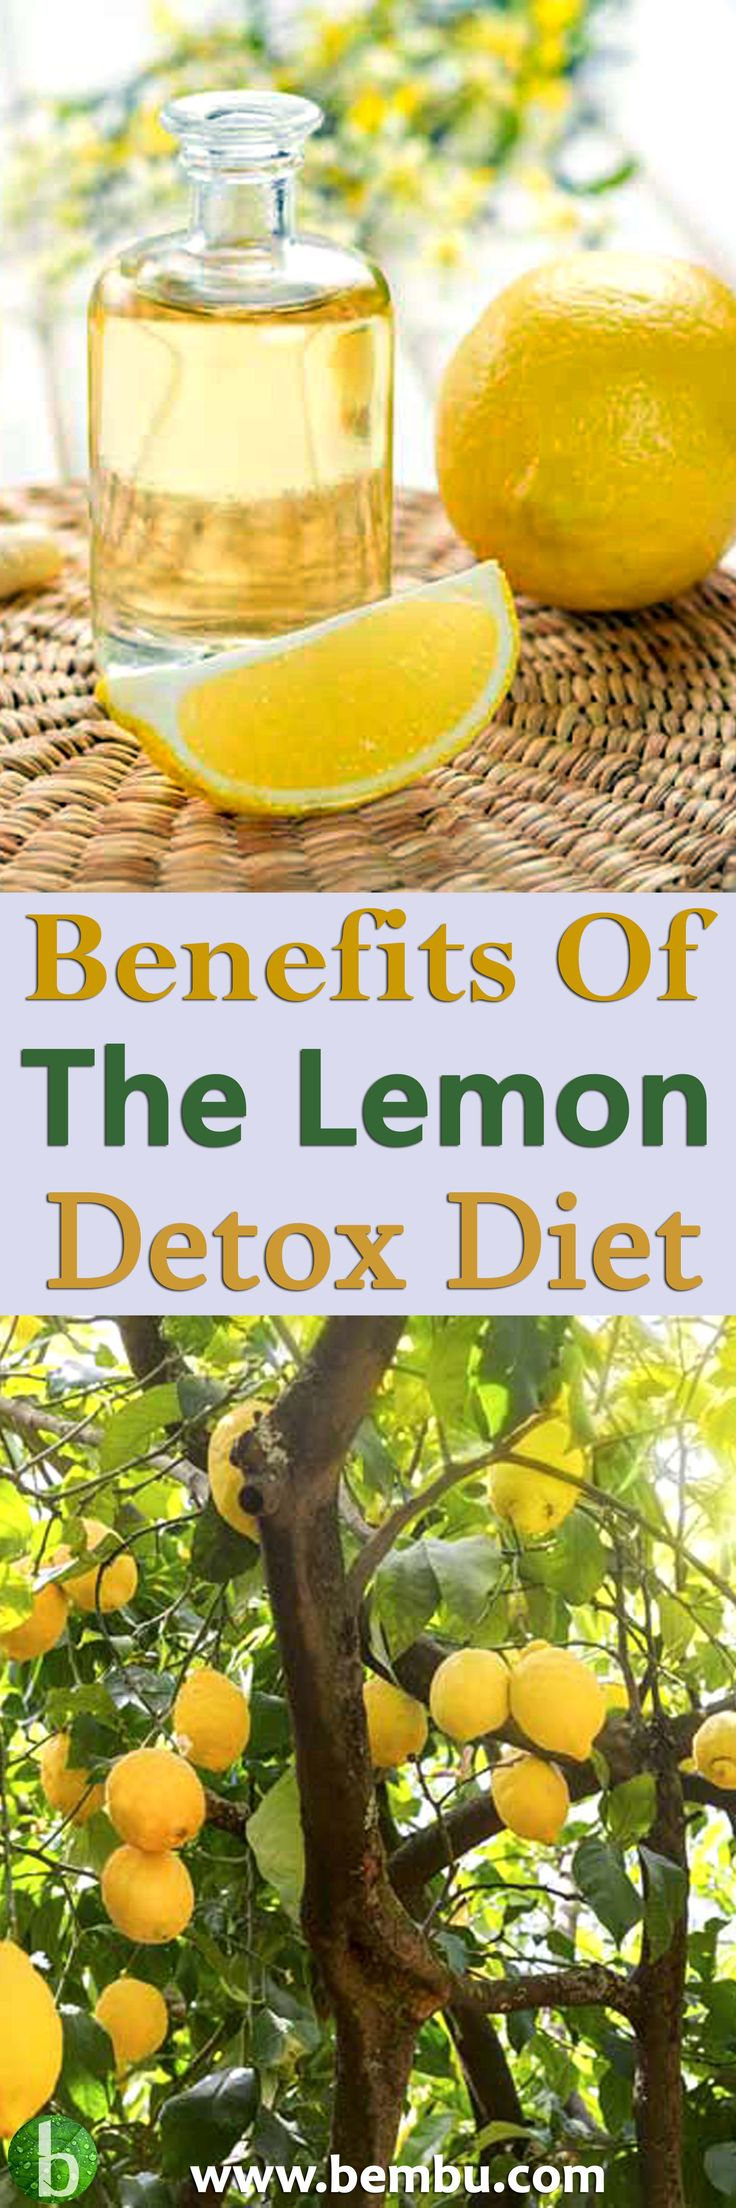 The Lemon Detox Diet, aka The Master Cleanse, has garnered a lot of press because of its ability to provide dramatic weight loss... Health Tips │ Health Ideas │Healthy Food │Health │Smoothie │Food │Desserts │Low Carb │Weight Loss │Diet │Fitness │Tea │Drinks │Fruits #Health #Ideas #Tips #Vitamin #Healthyfood #Food #Desserts #Smoothie #Lowcarb #Weightloss #Diet #Fitness #Tea #Drinks #Fruits